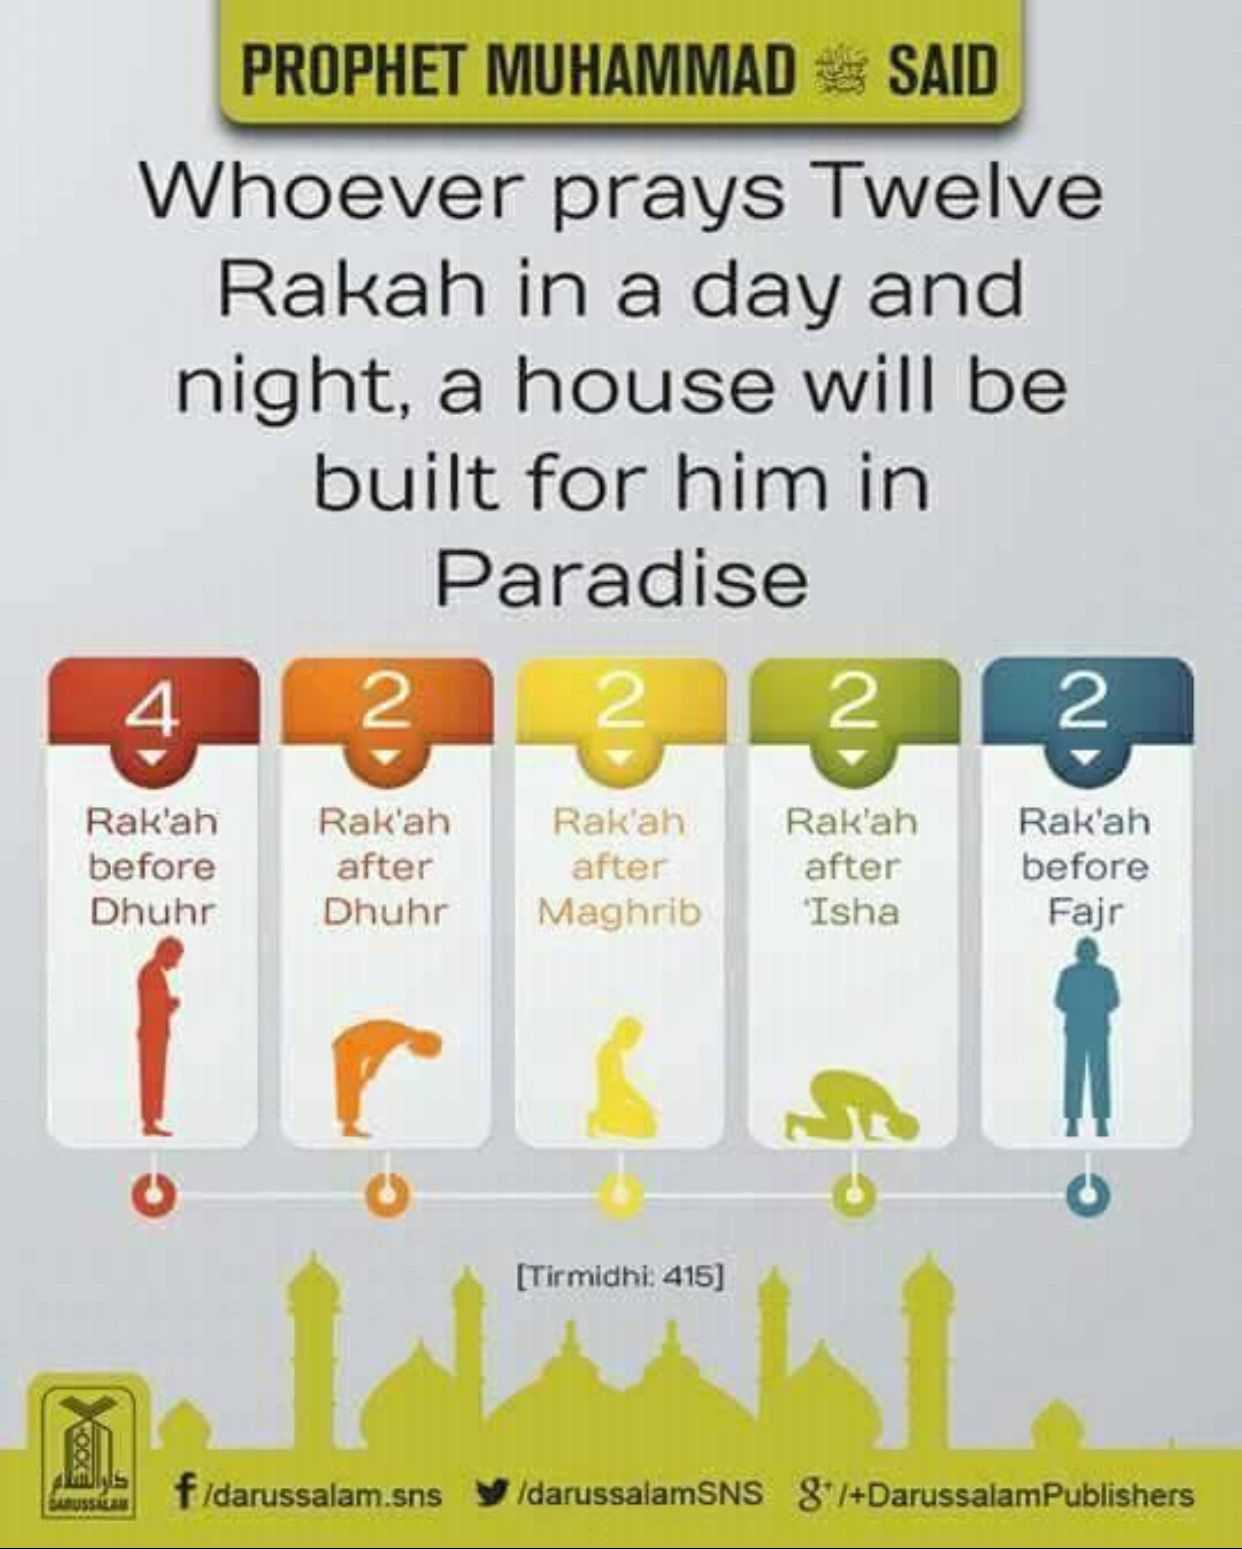 Pray 12 Rakat after obligatory Prayers and get a house built